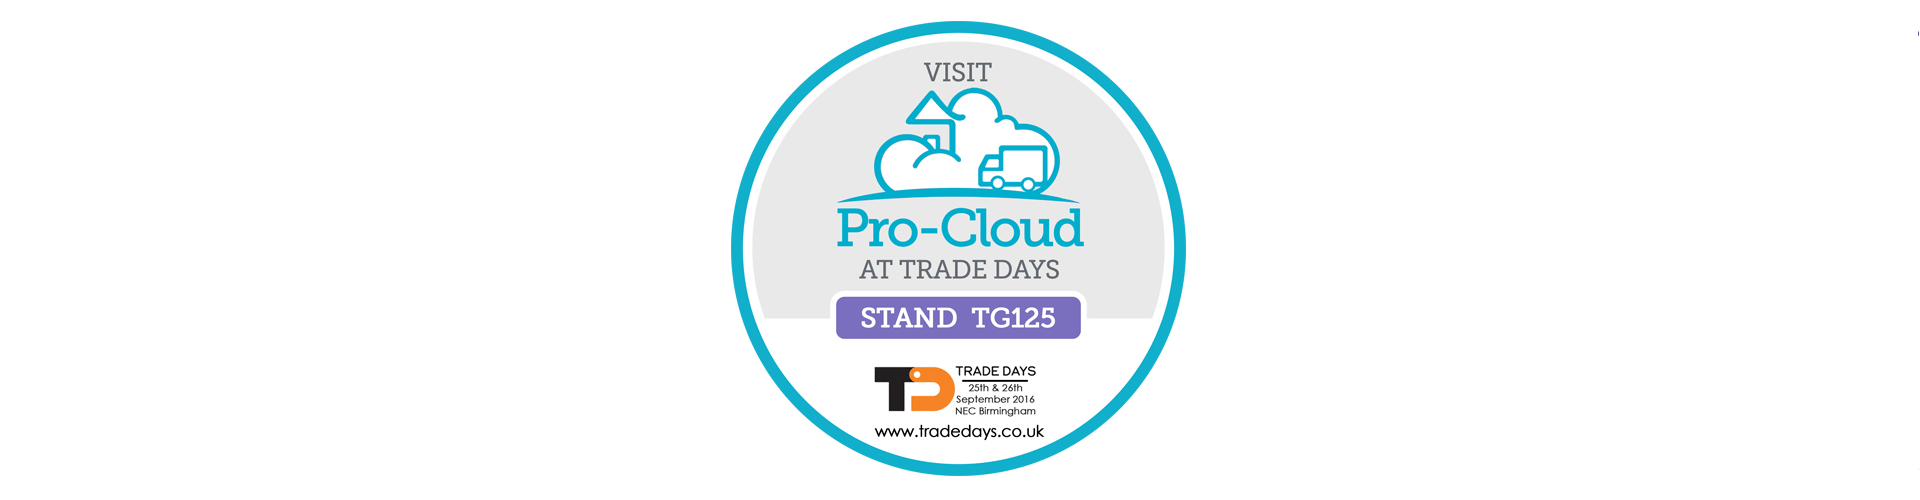 pro-cloud at trade days stamp